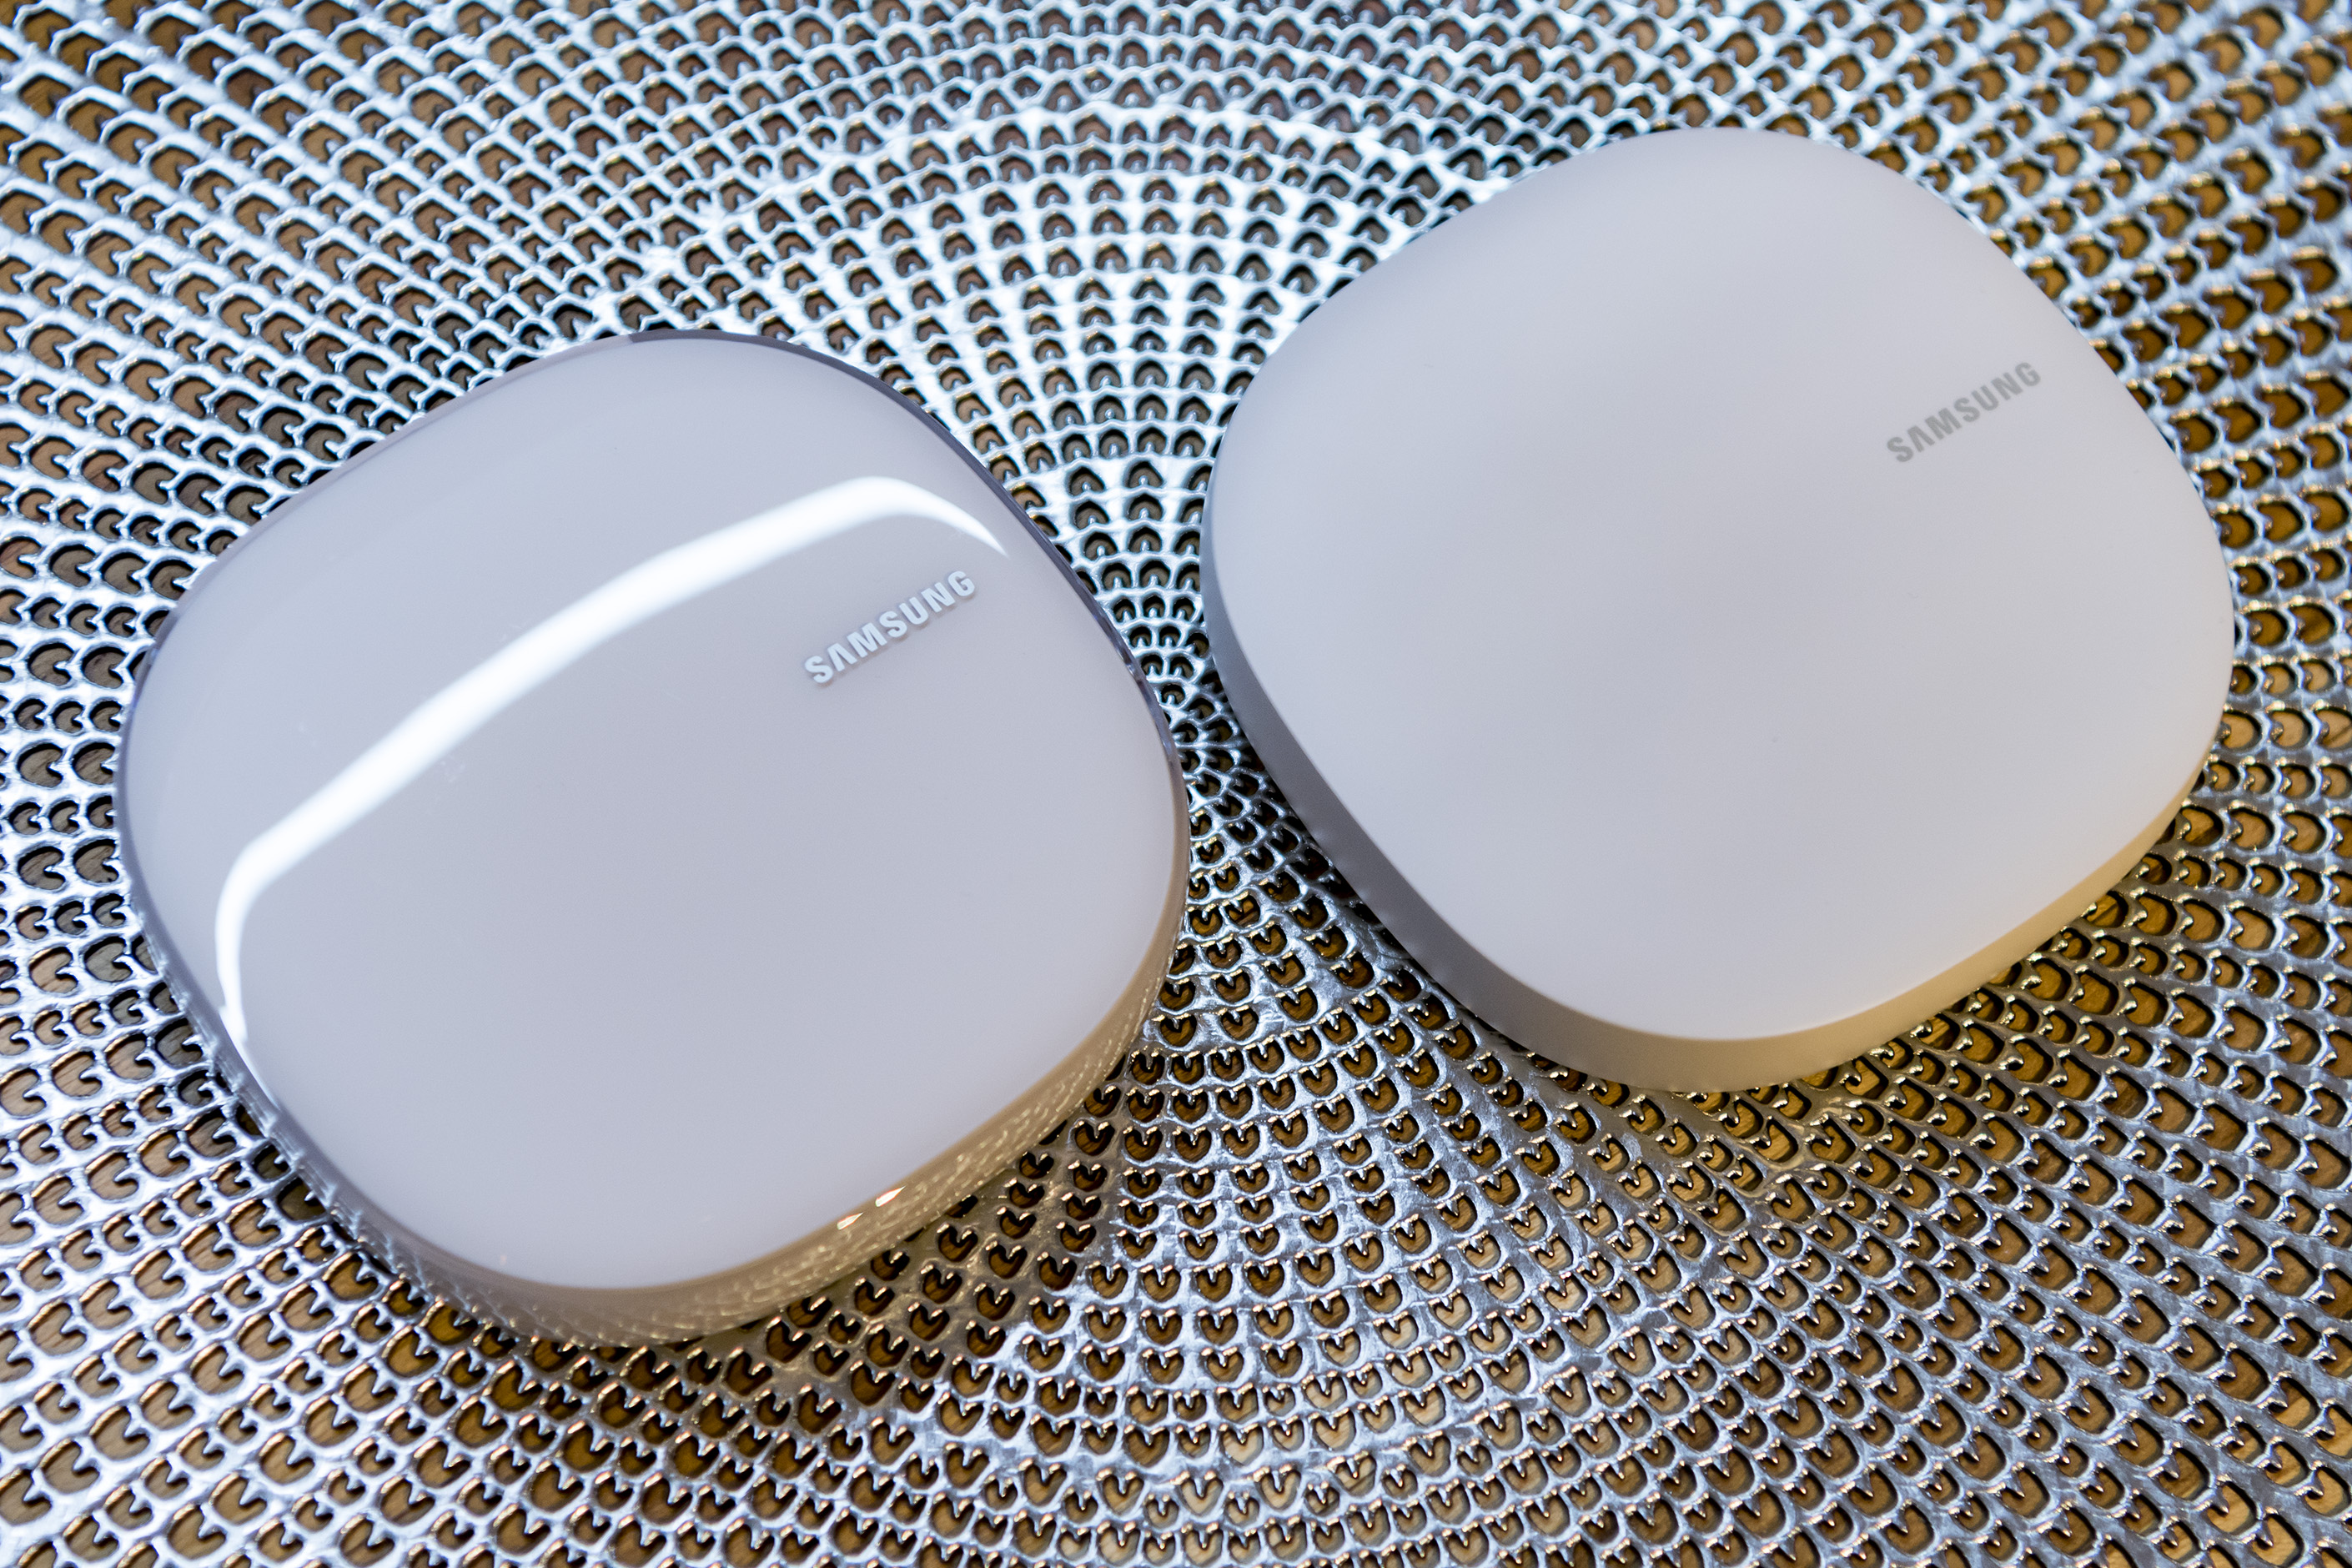 samsung-connect-home-routers.jpg